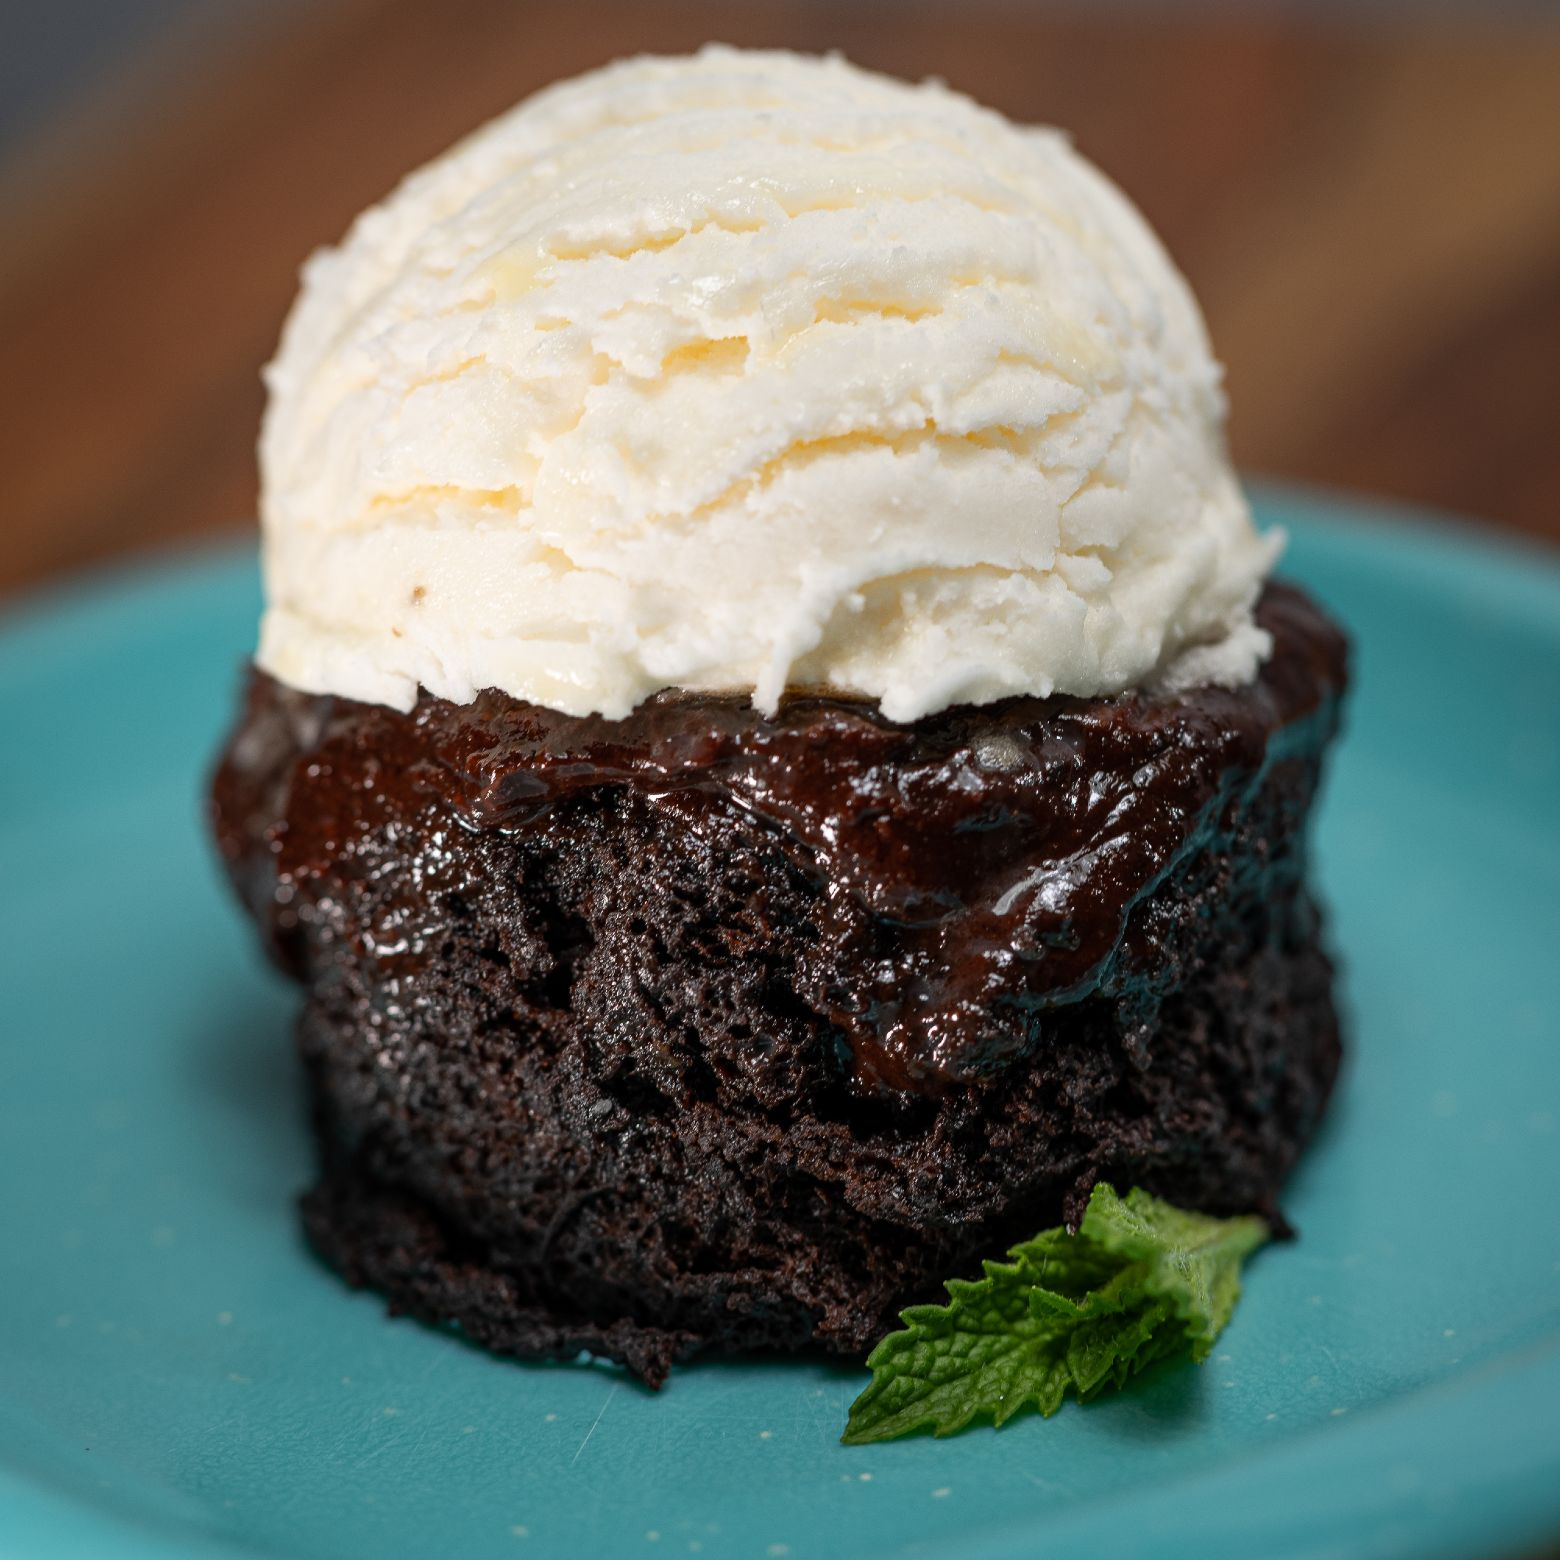 Midnight mug cake for 2 topped with a scoop of vanilla ice cream.